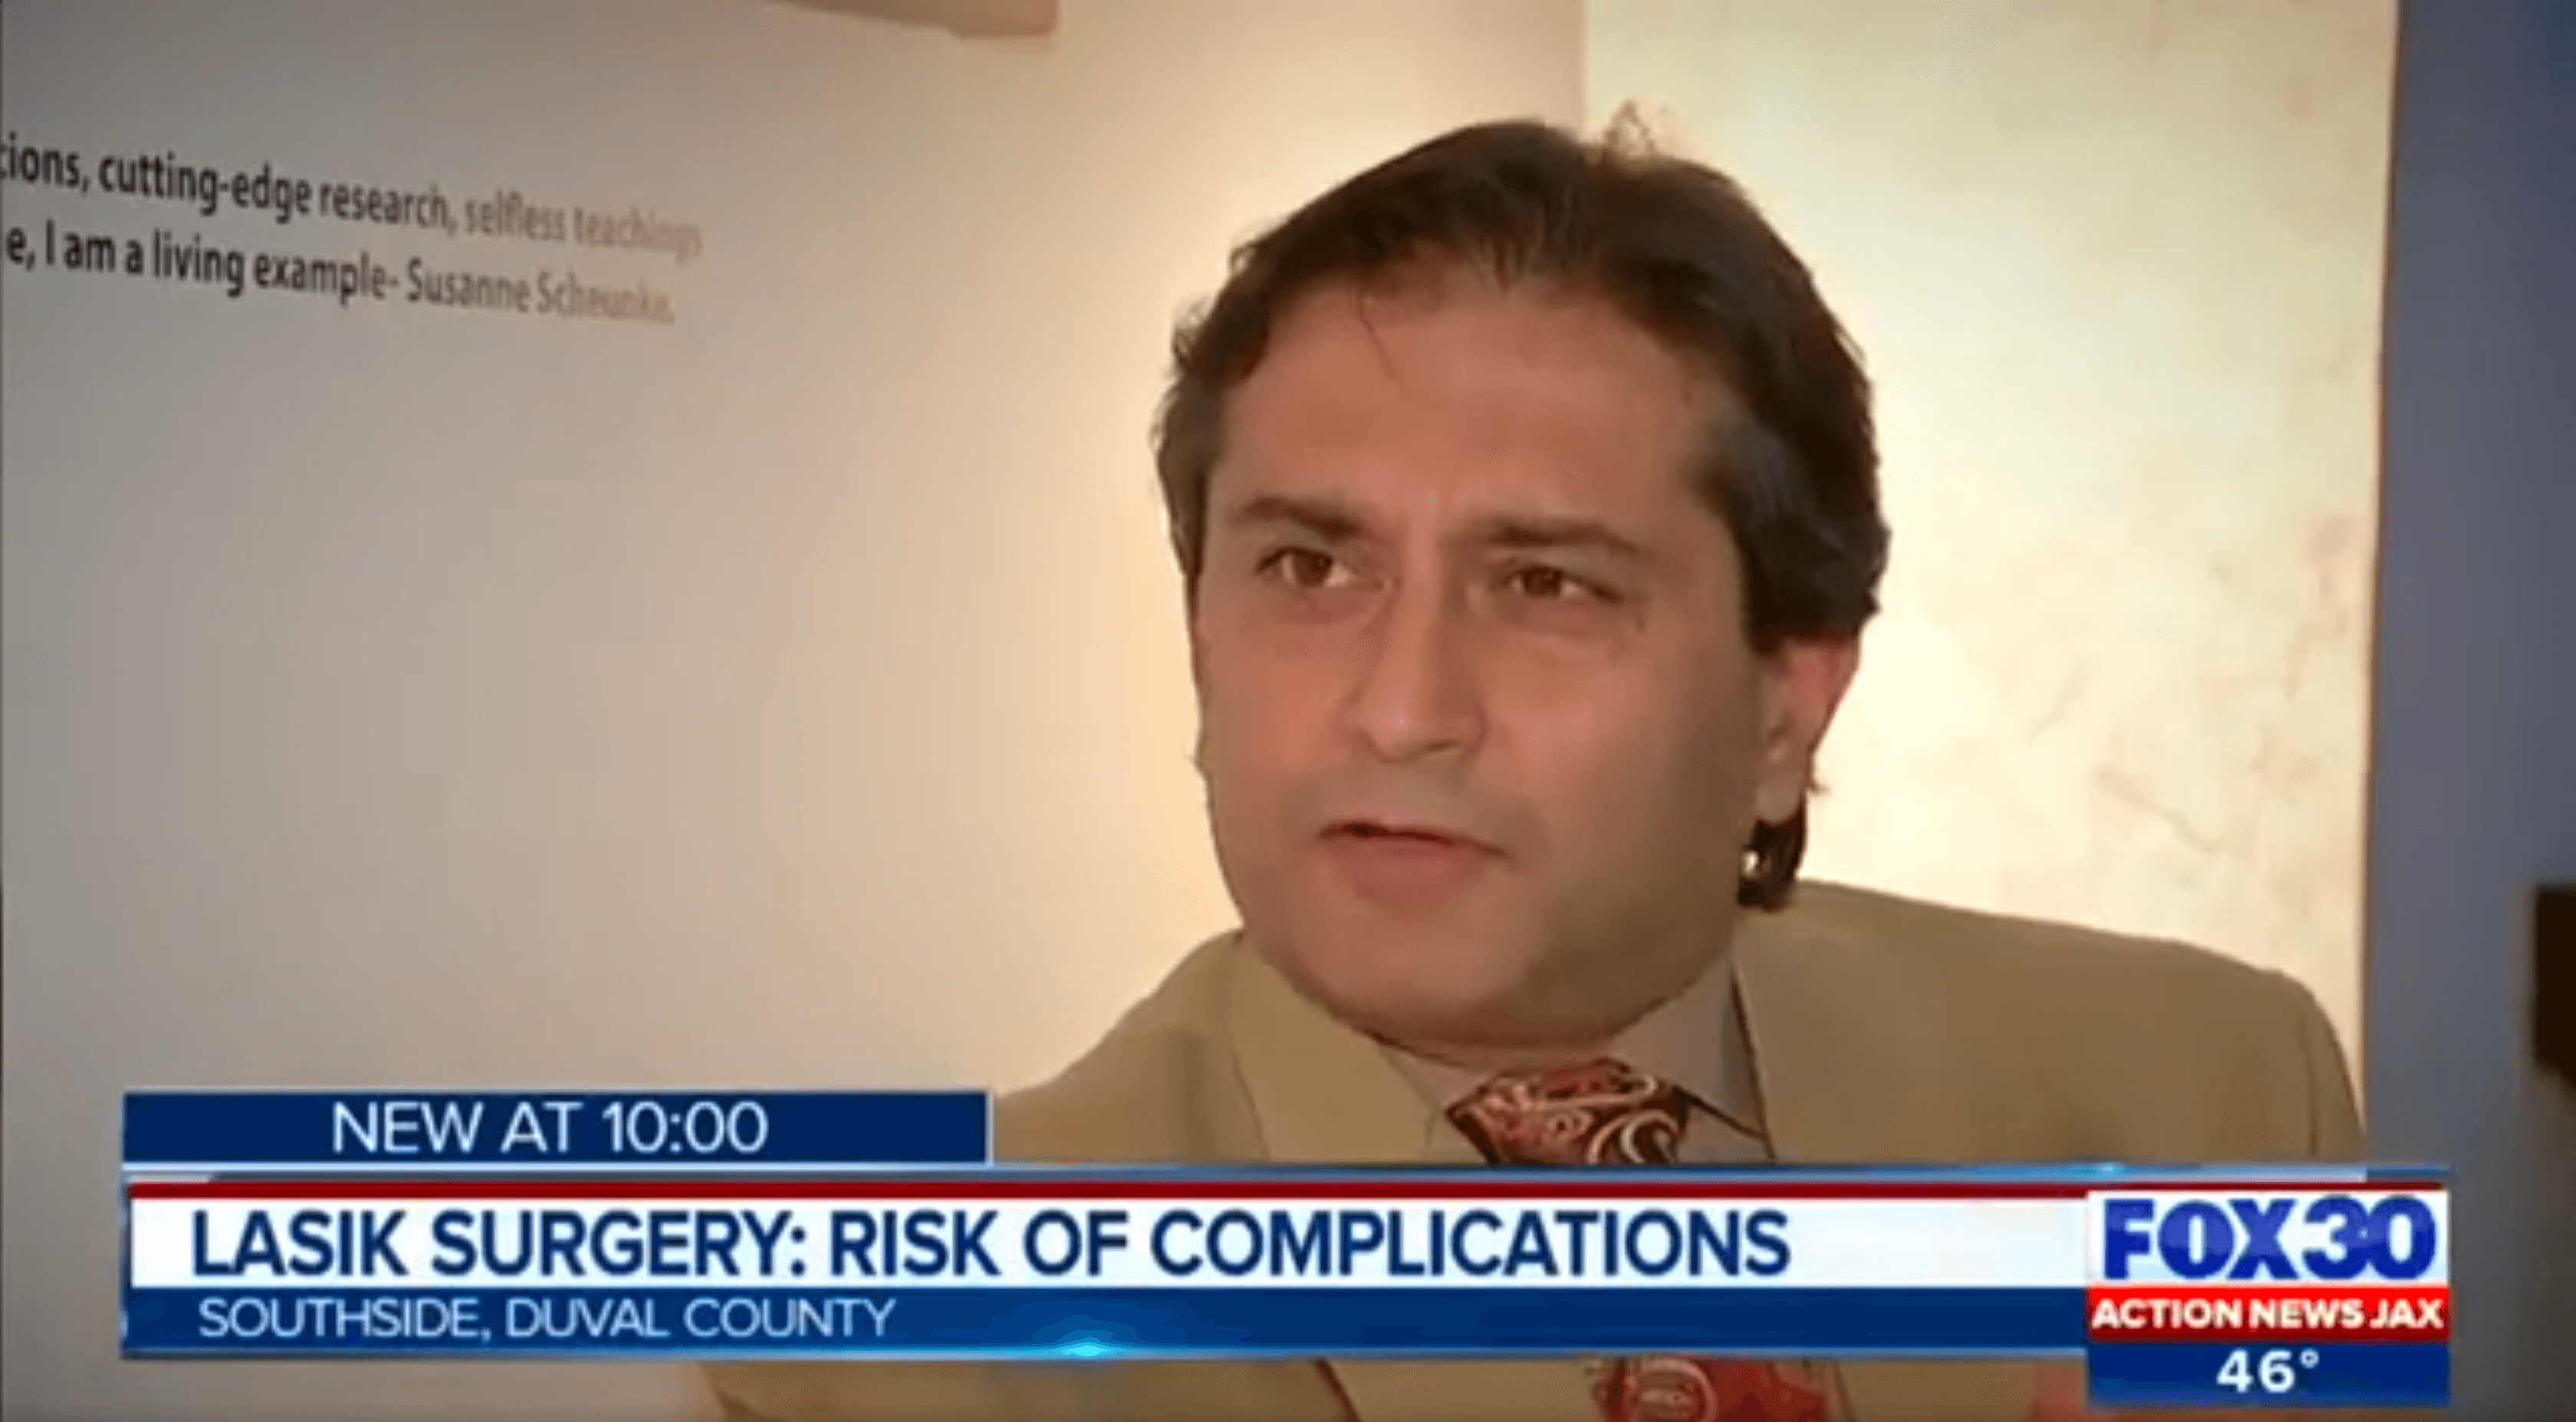 News Media Interview on LASIK Complication with Dr. Gulani